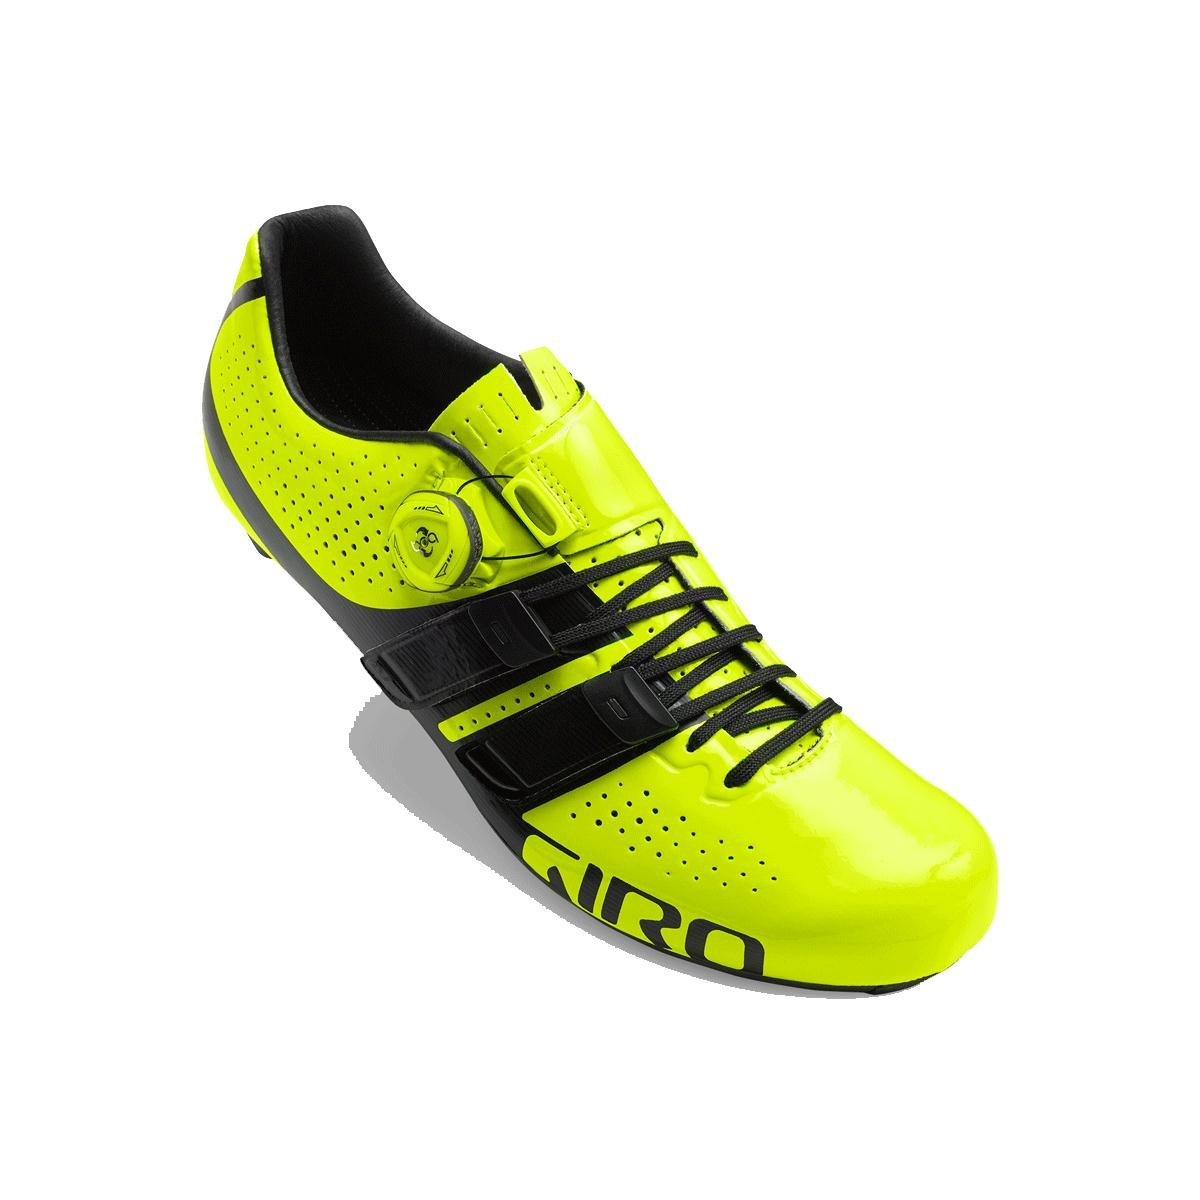 Giro Factor techlace Cycling Shoes – Men 's B075RQLQ7L 41.5 M EU|Highlight Yellow/Black Highlight Yellow/Black 41.5 M EU